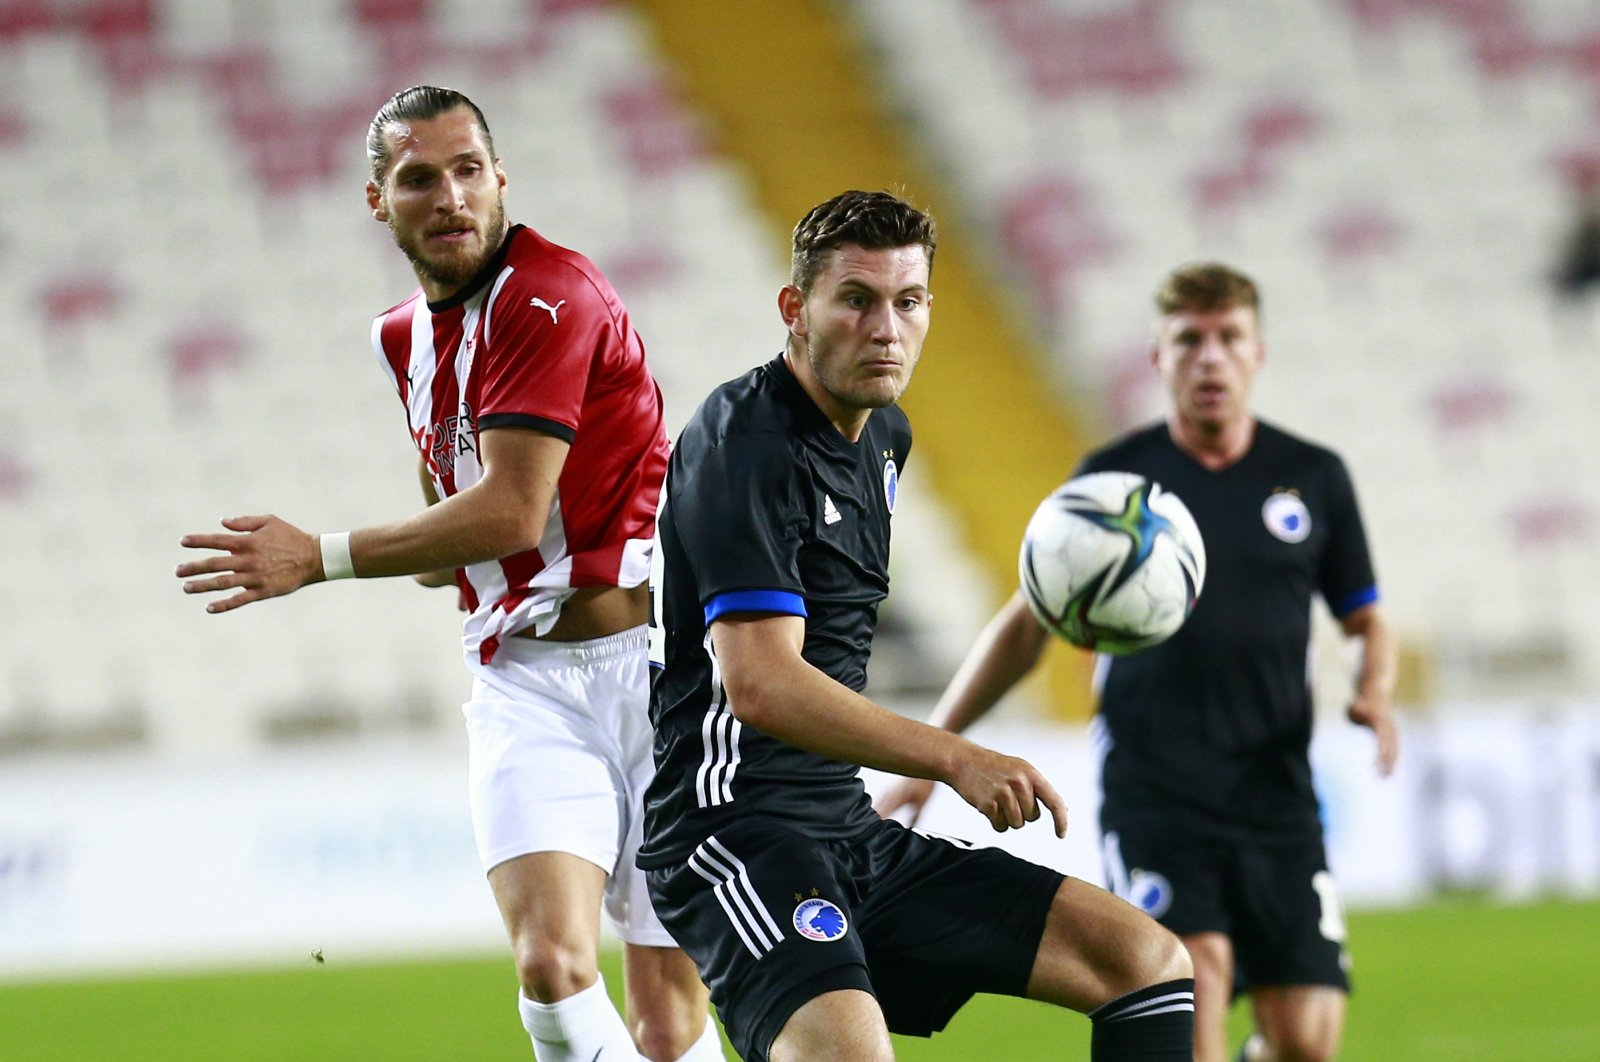 Sivasspor and Copenhagen are seen in action at Yeni 4 Eylül Stadium during the UEFA Europa Conference League playoff match on Aug. 19, 2021 (AA Photo)